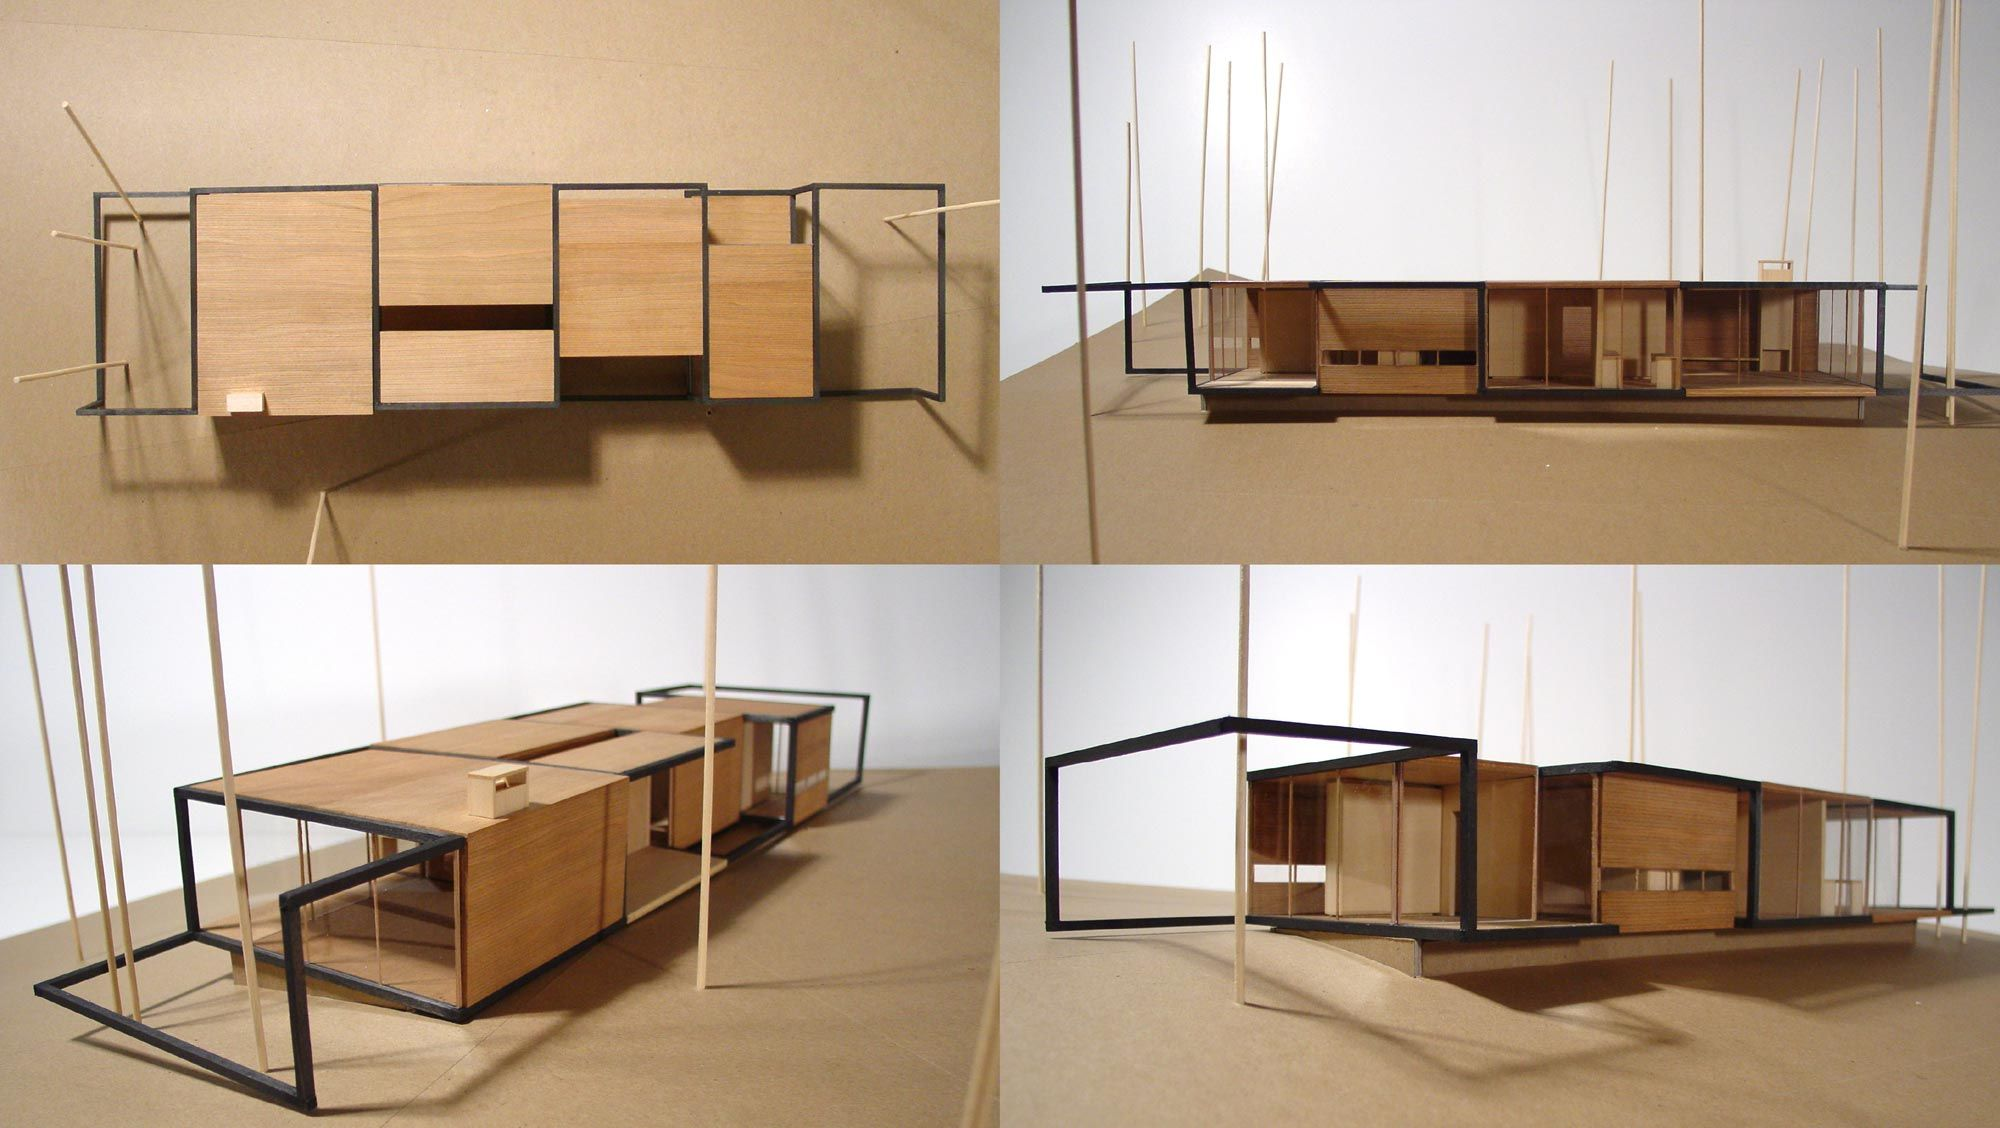 house architectural model models pinterest architectural models